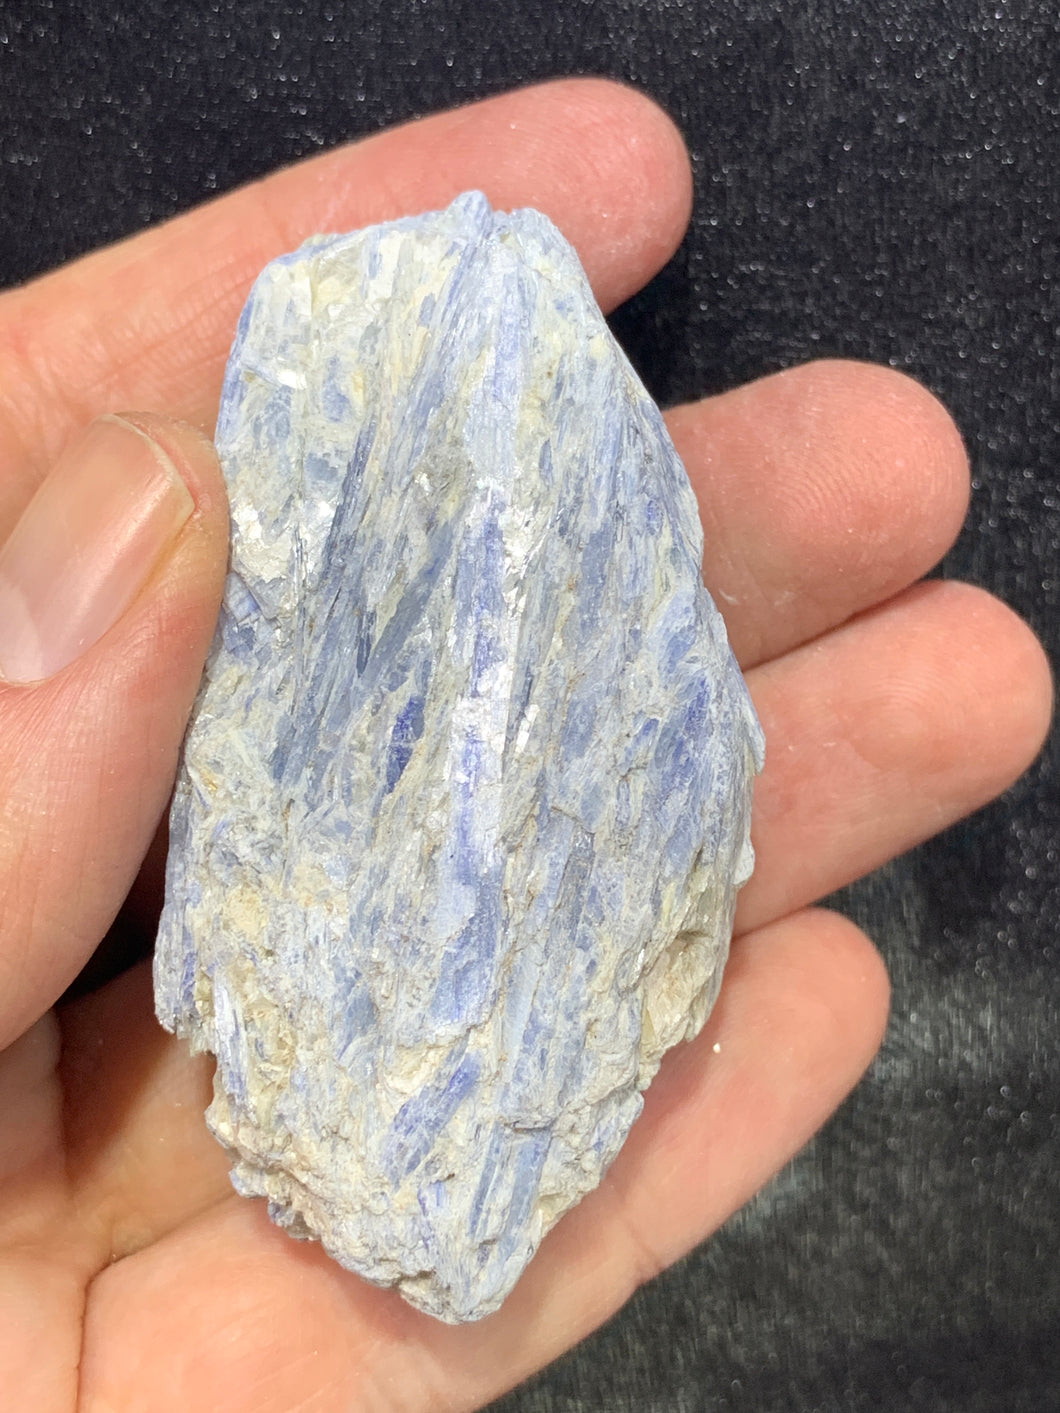 Blue Kyanite Rough